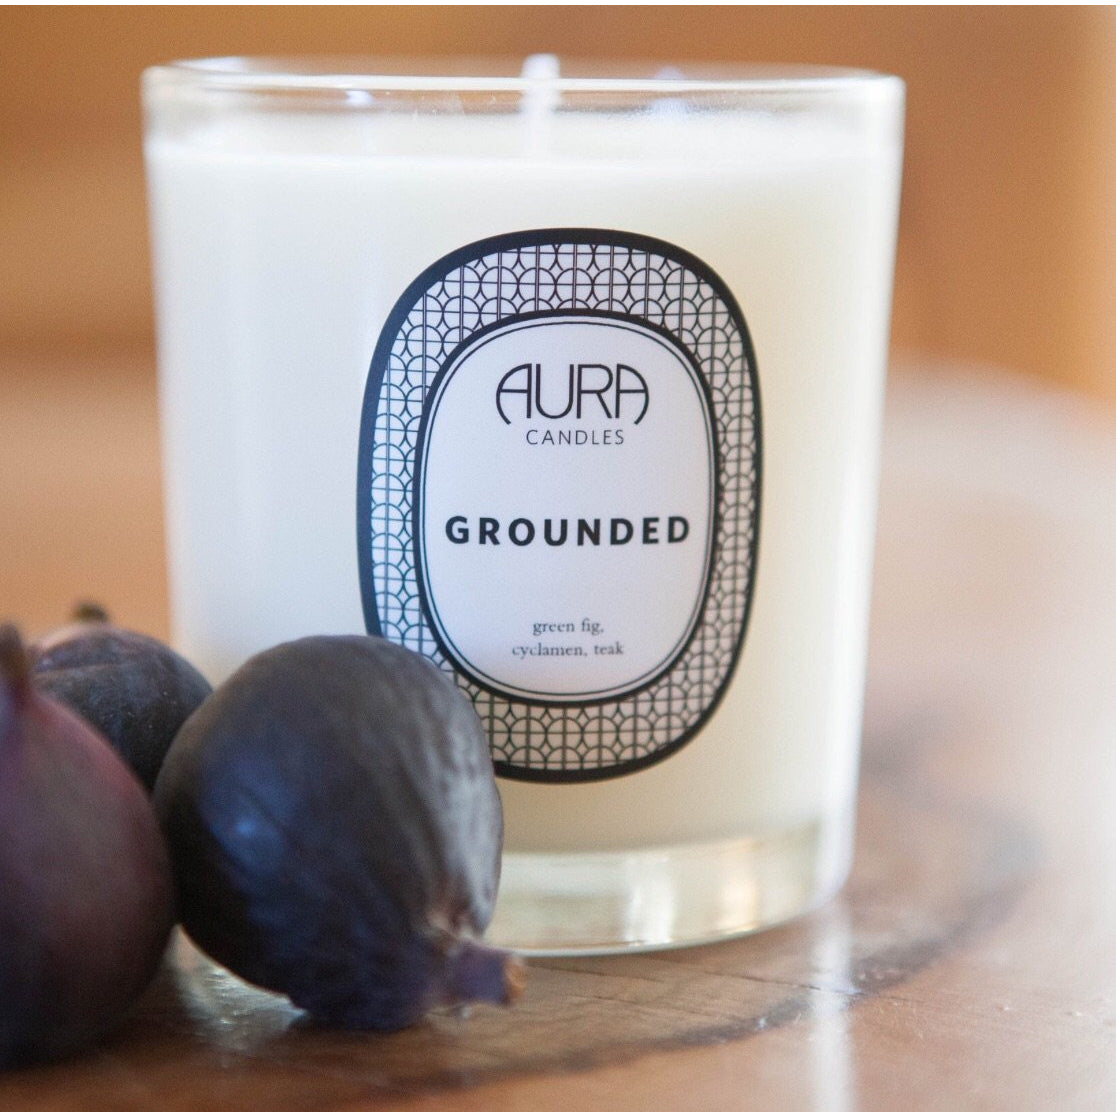 Gree Fig , Cyclamen , Teak Candle by Aura